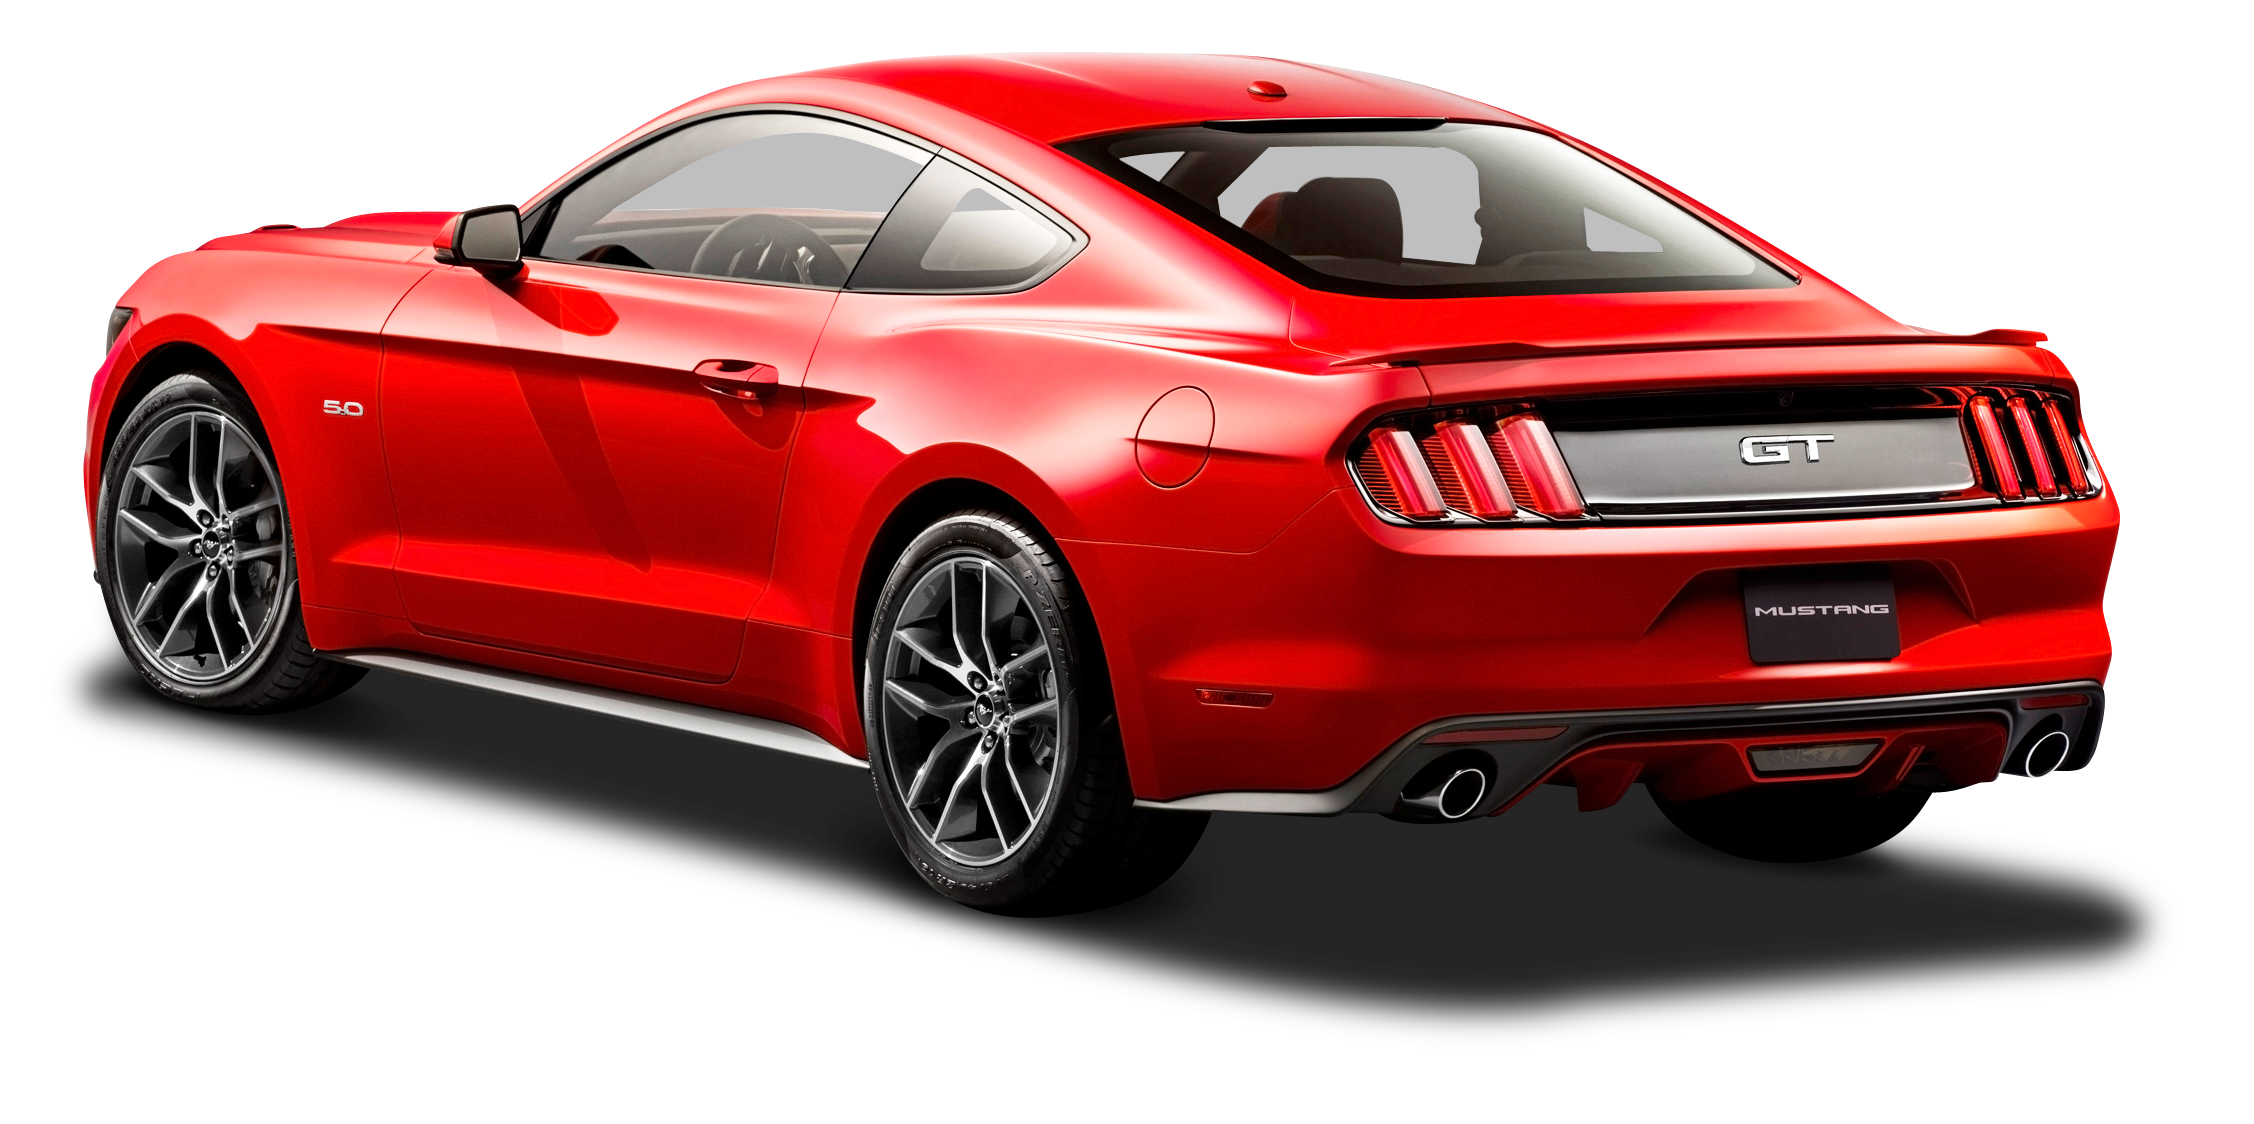 Back of car clipart freeuse stock Ford Mustang Red Car Back Side PNG Image - PurePNG | Free ... freeuse stock